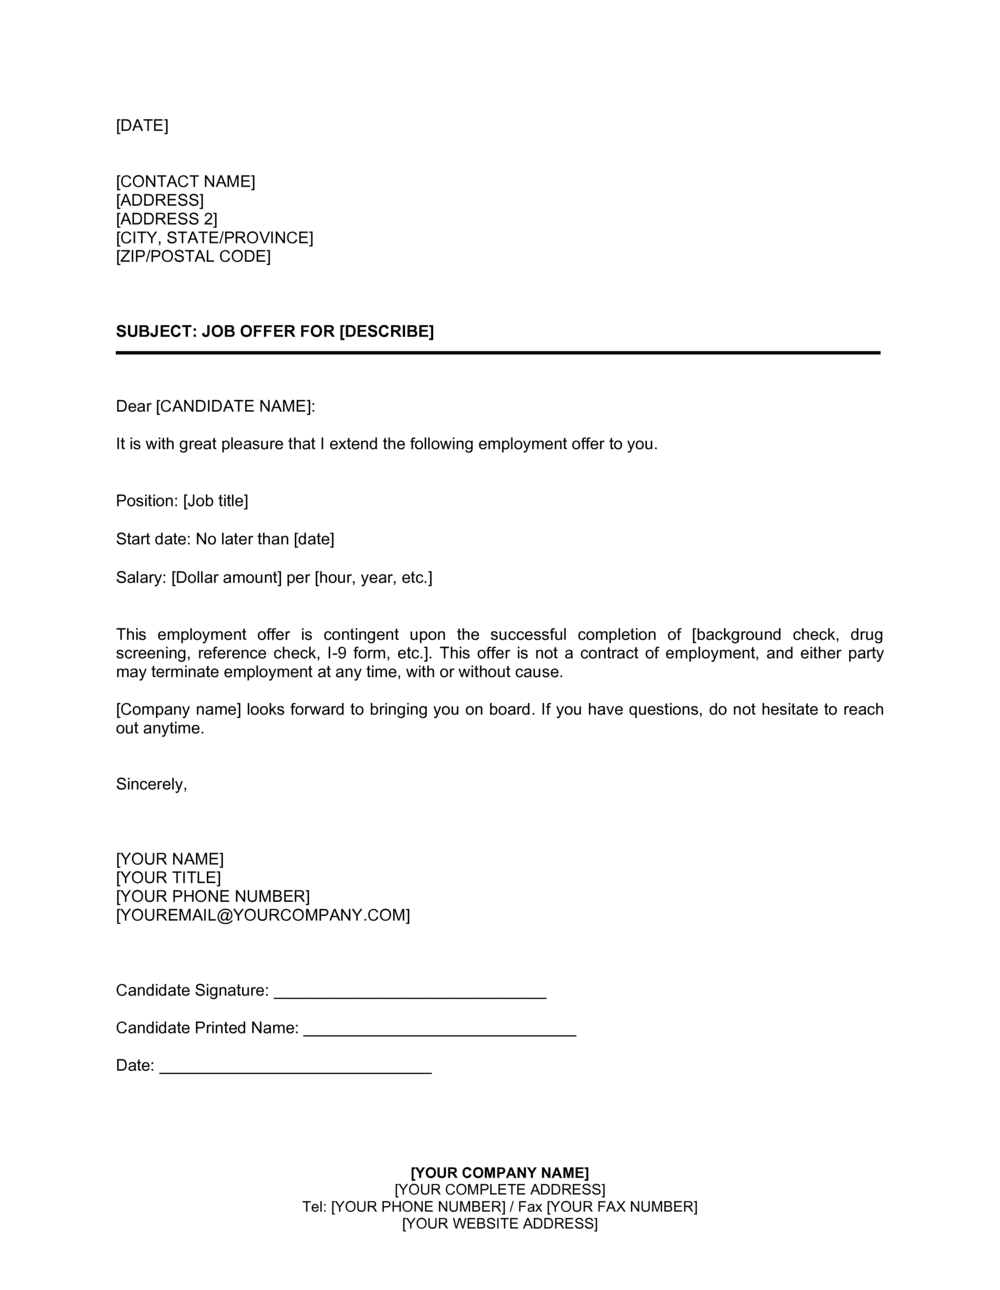 Business-in-a-Box's Job Offer Letter Simple Template